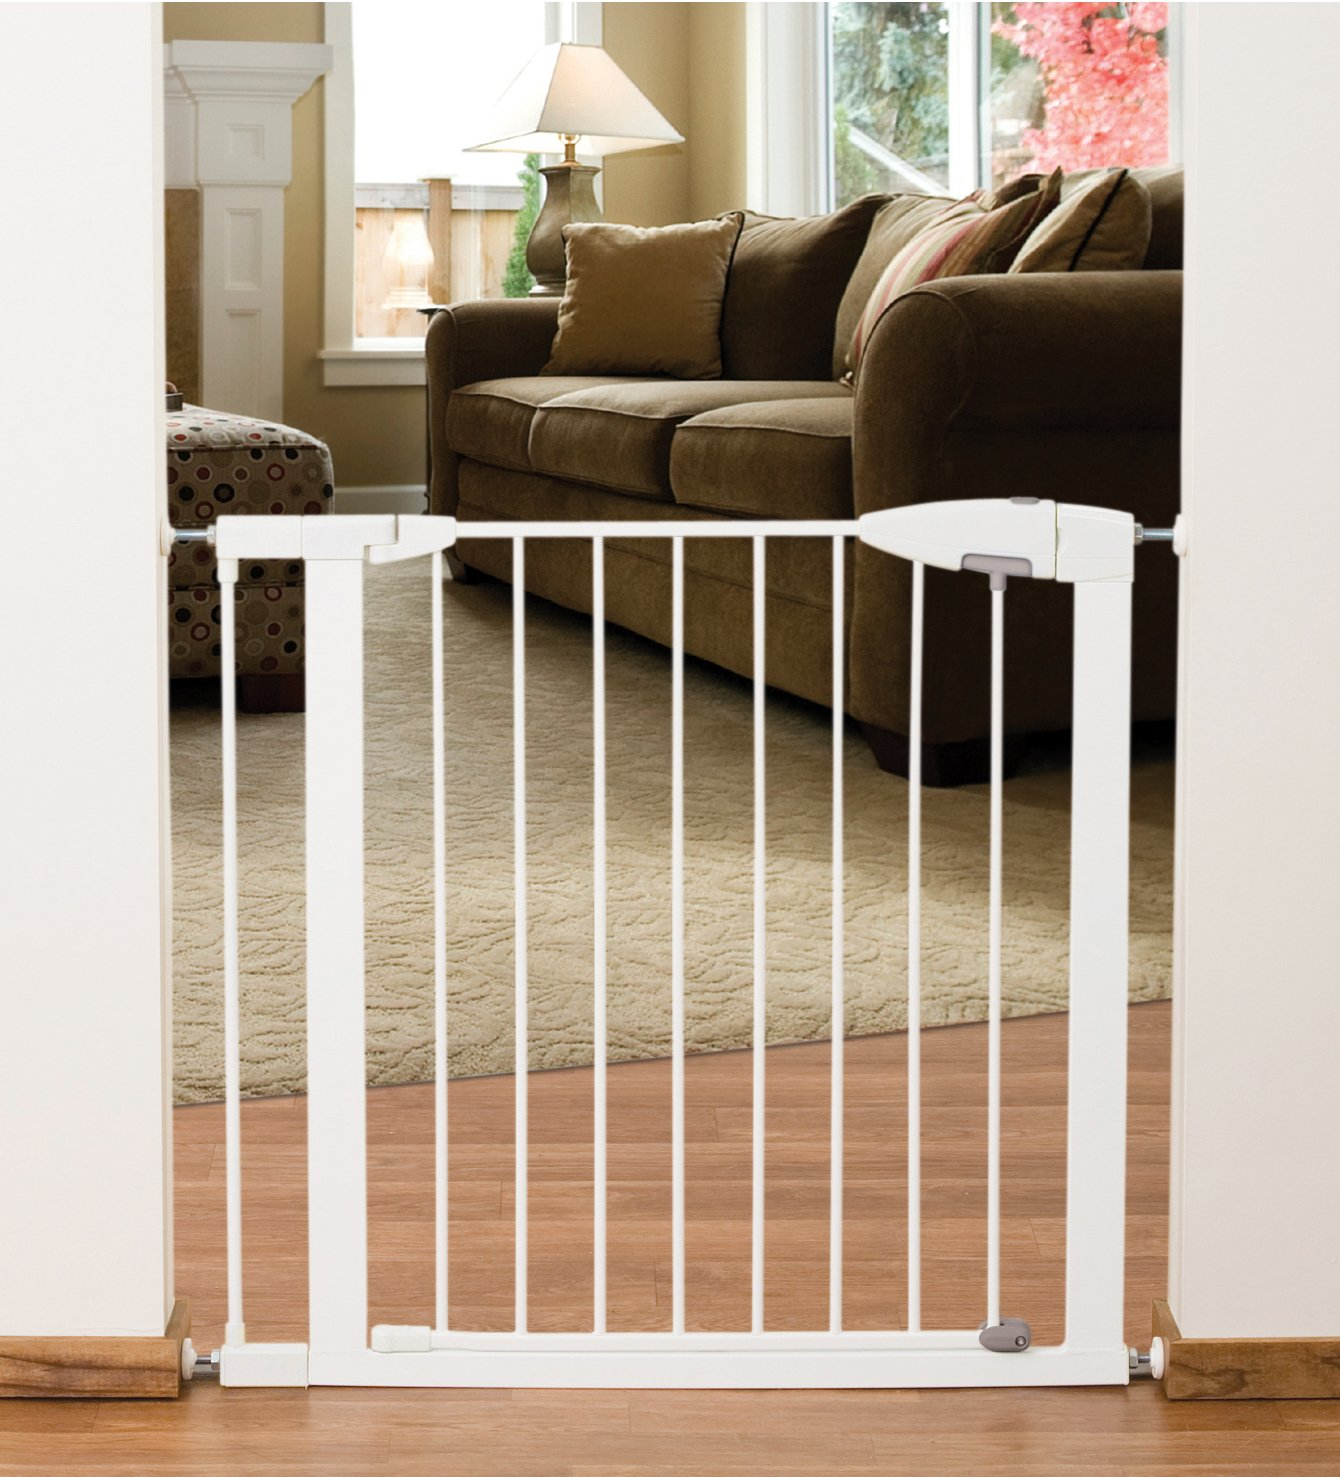 Munchkin Baby Gate Extension White 5 5 Quot 689744402686 Ebay